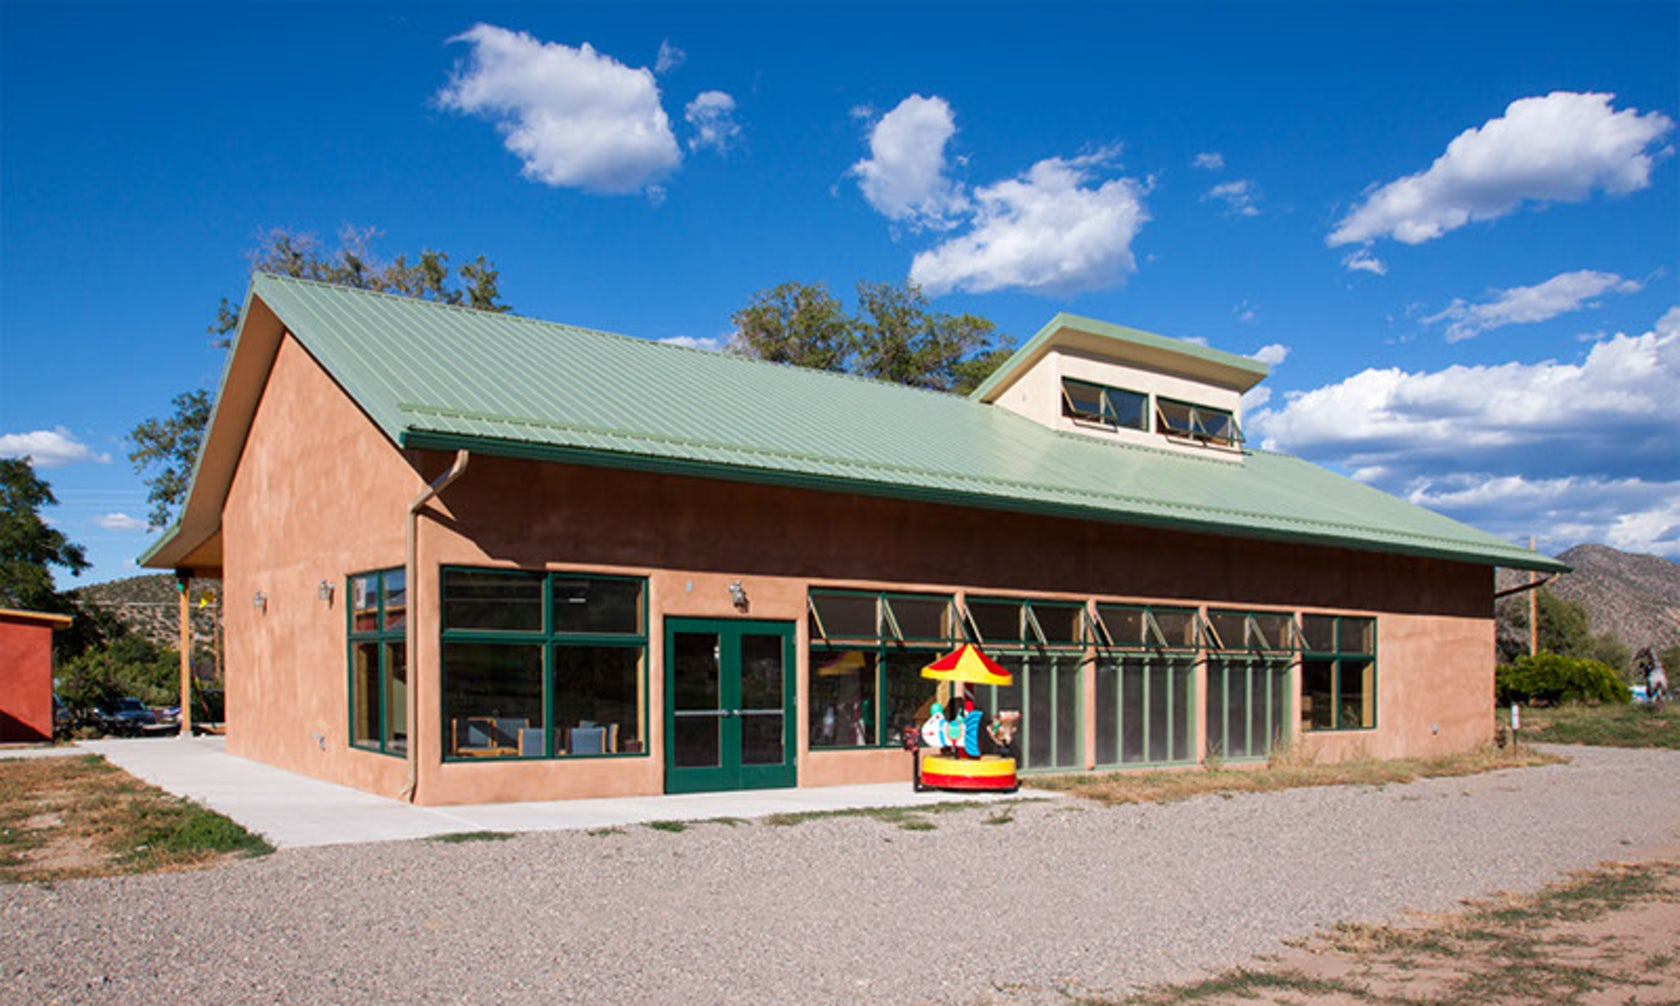 Color photograph of Adobe library building with a plastic children's carousel in bright primary colors in front of the building. In the foreground is a gravel parking lot. Libray building is framed against a bright blue sky with scattered clouds.